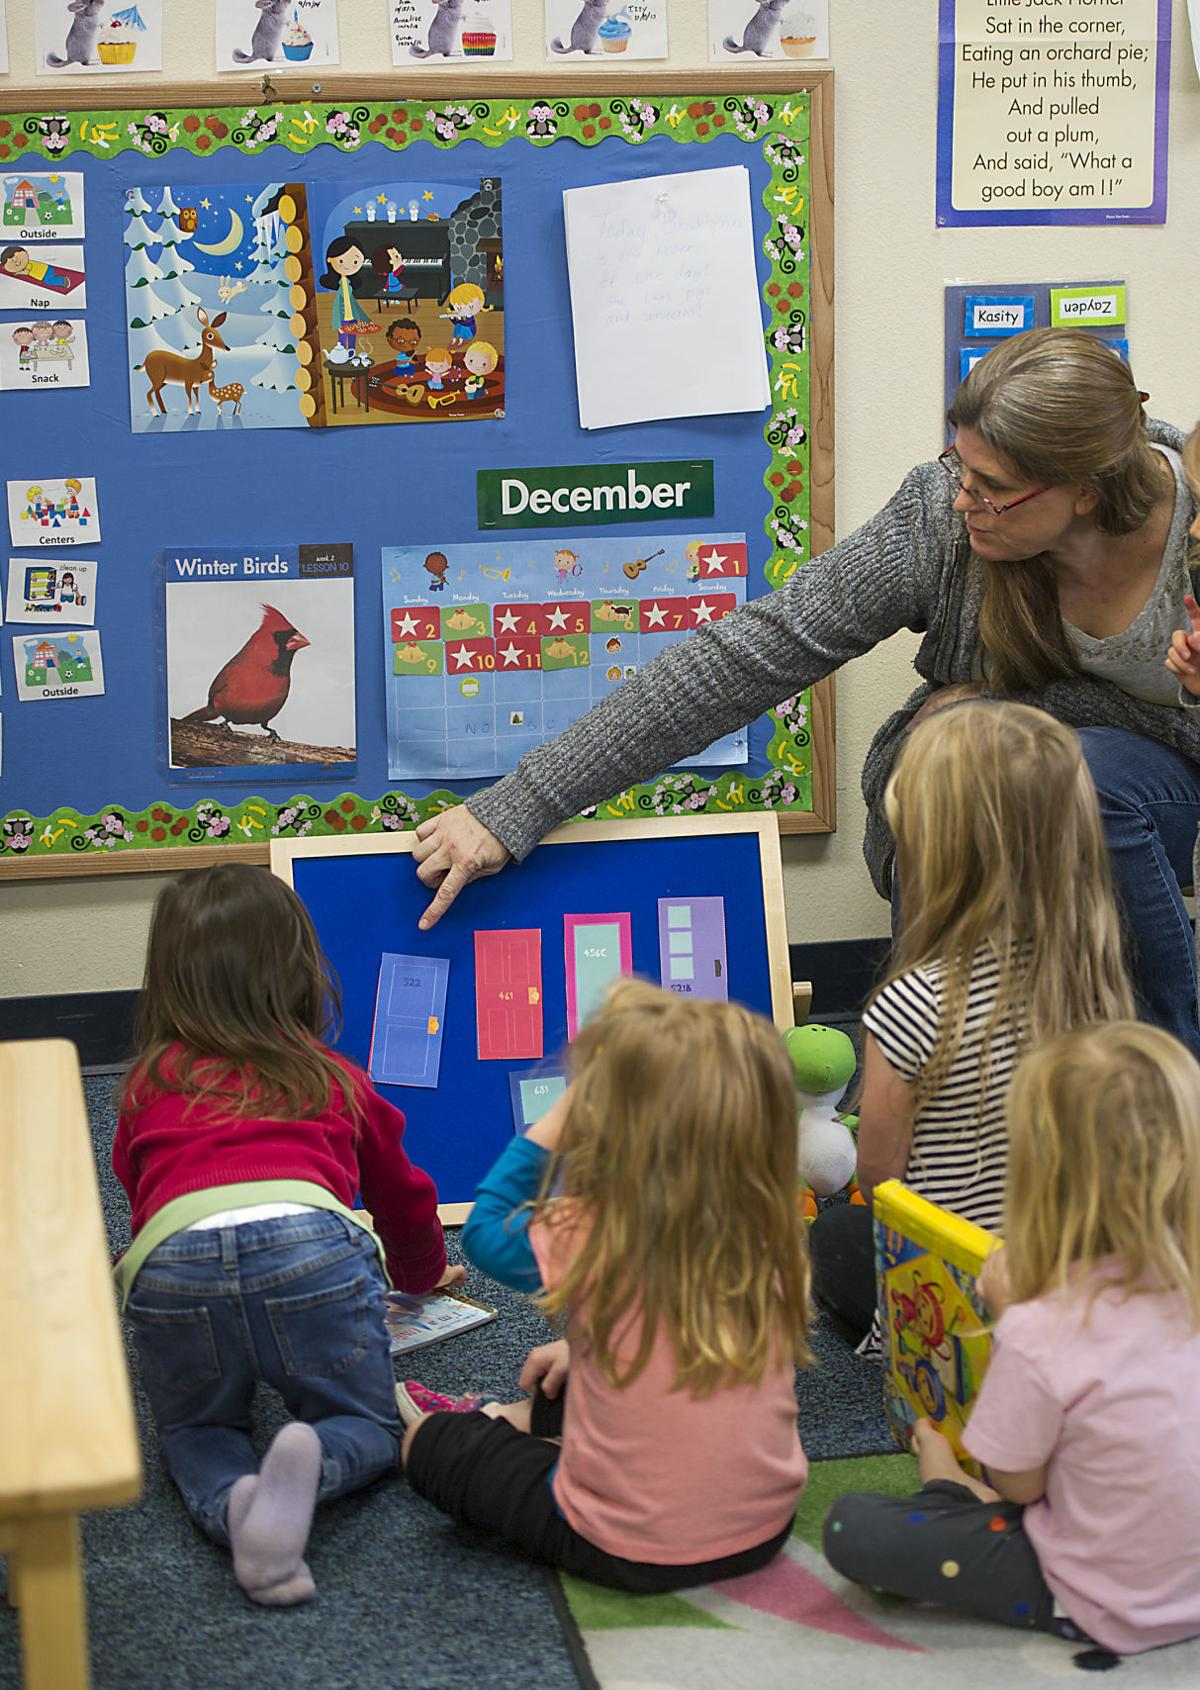 COCC students lobby for on-campus child care